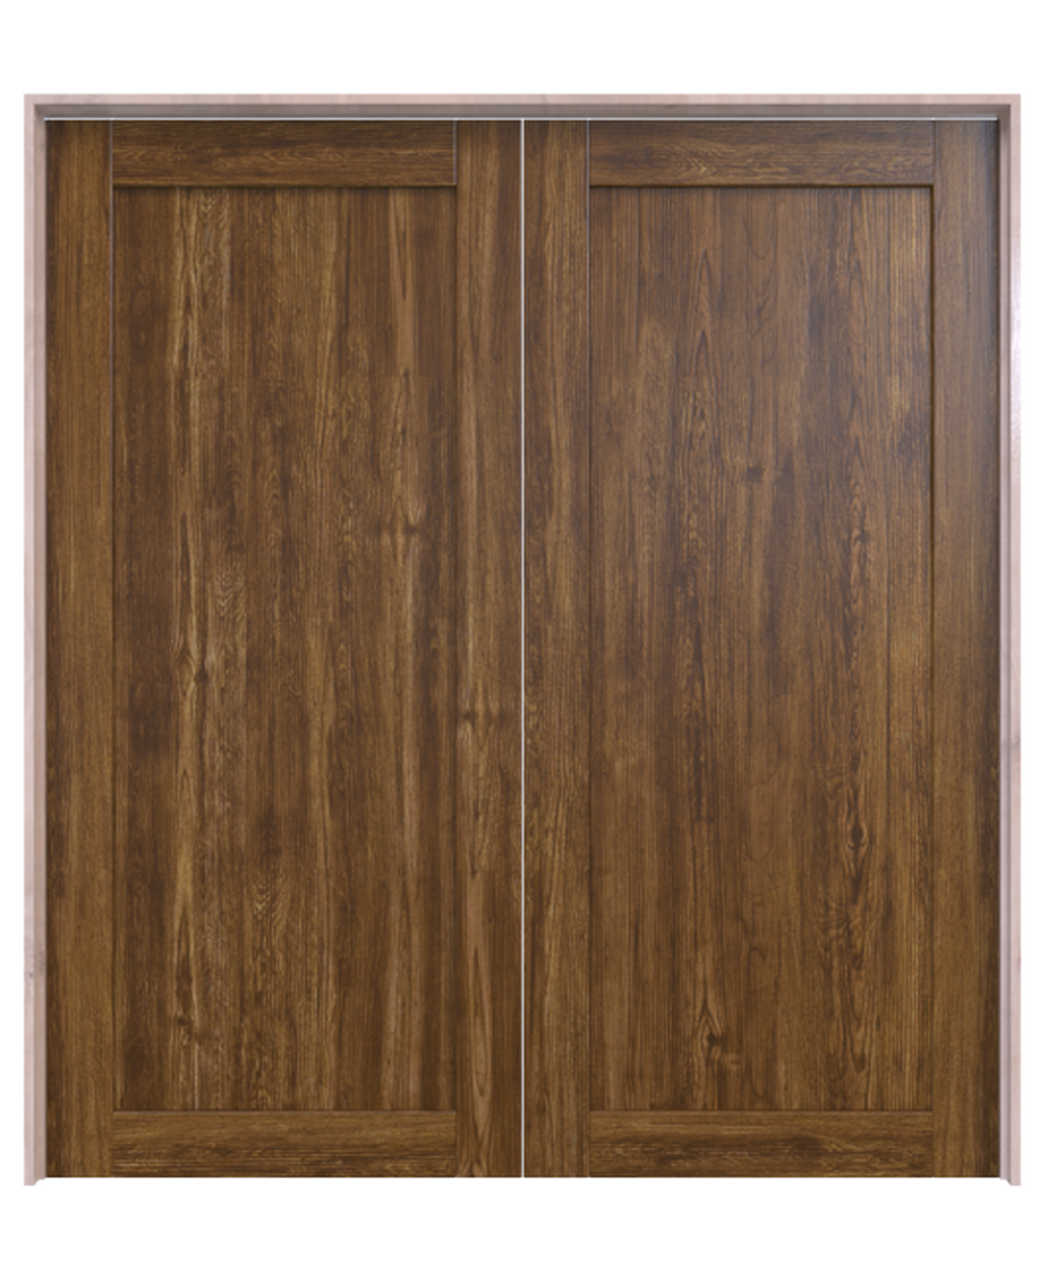 stained wood full pane double barn door